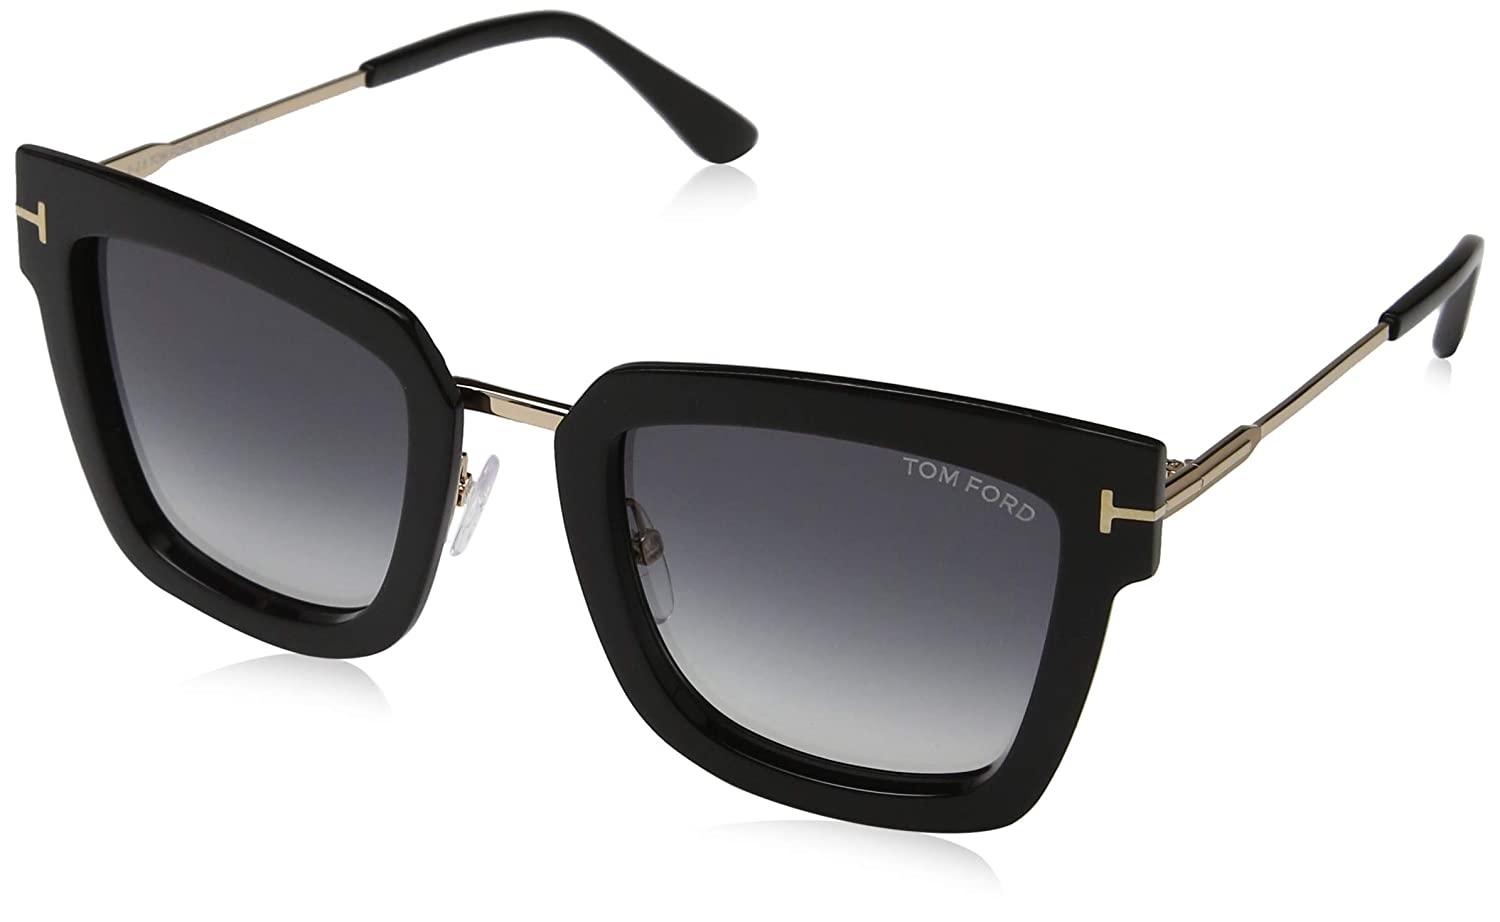 99201734a1 Sunglasses Tom Ford FT 0573 Lara- 02 01B shiny black   gradient smoke at  Amazon Men s Clothing store